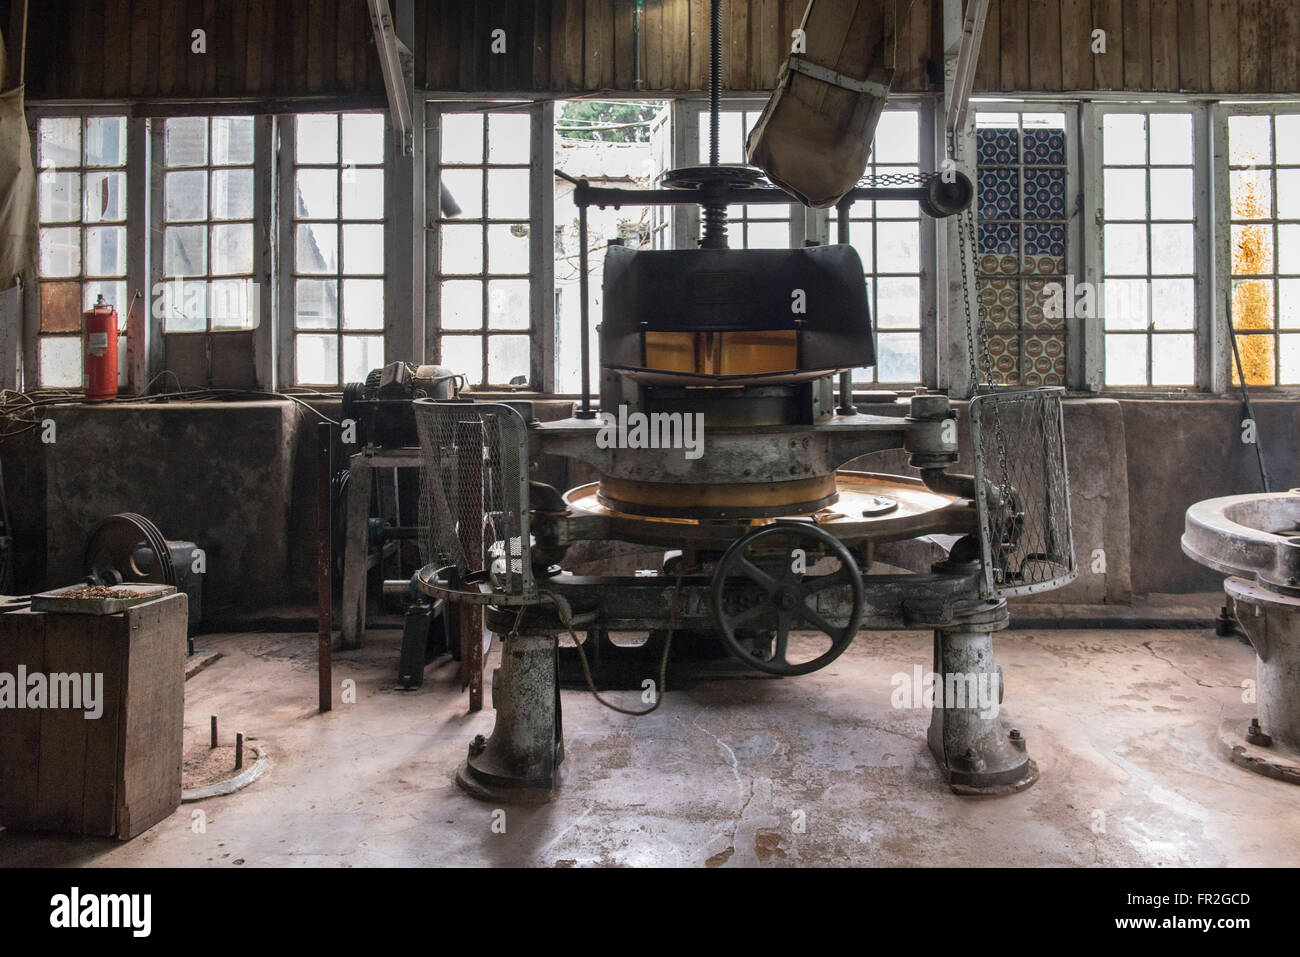 Vintage Machinery